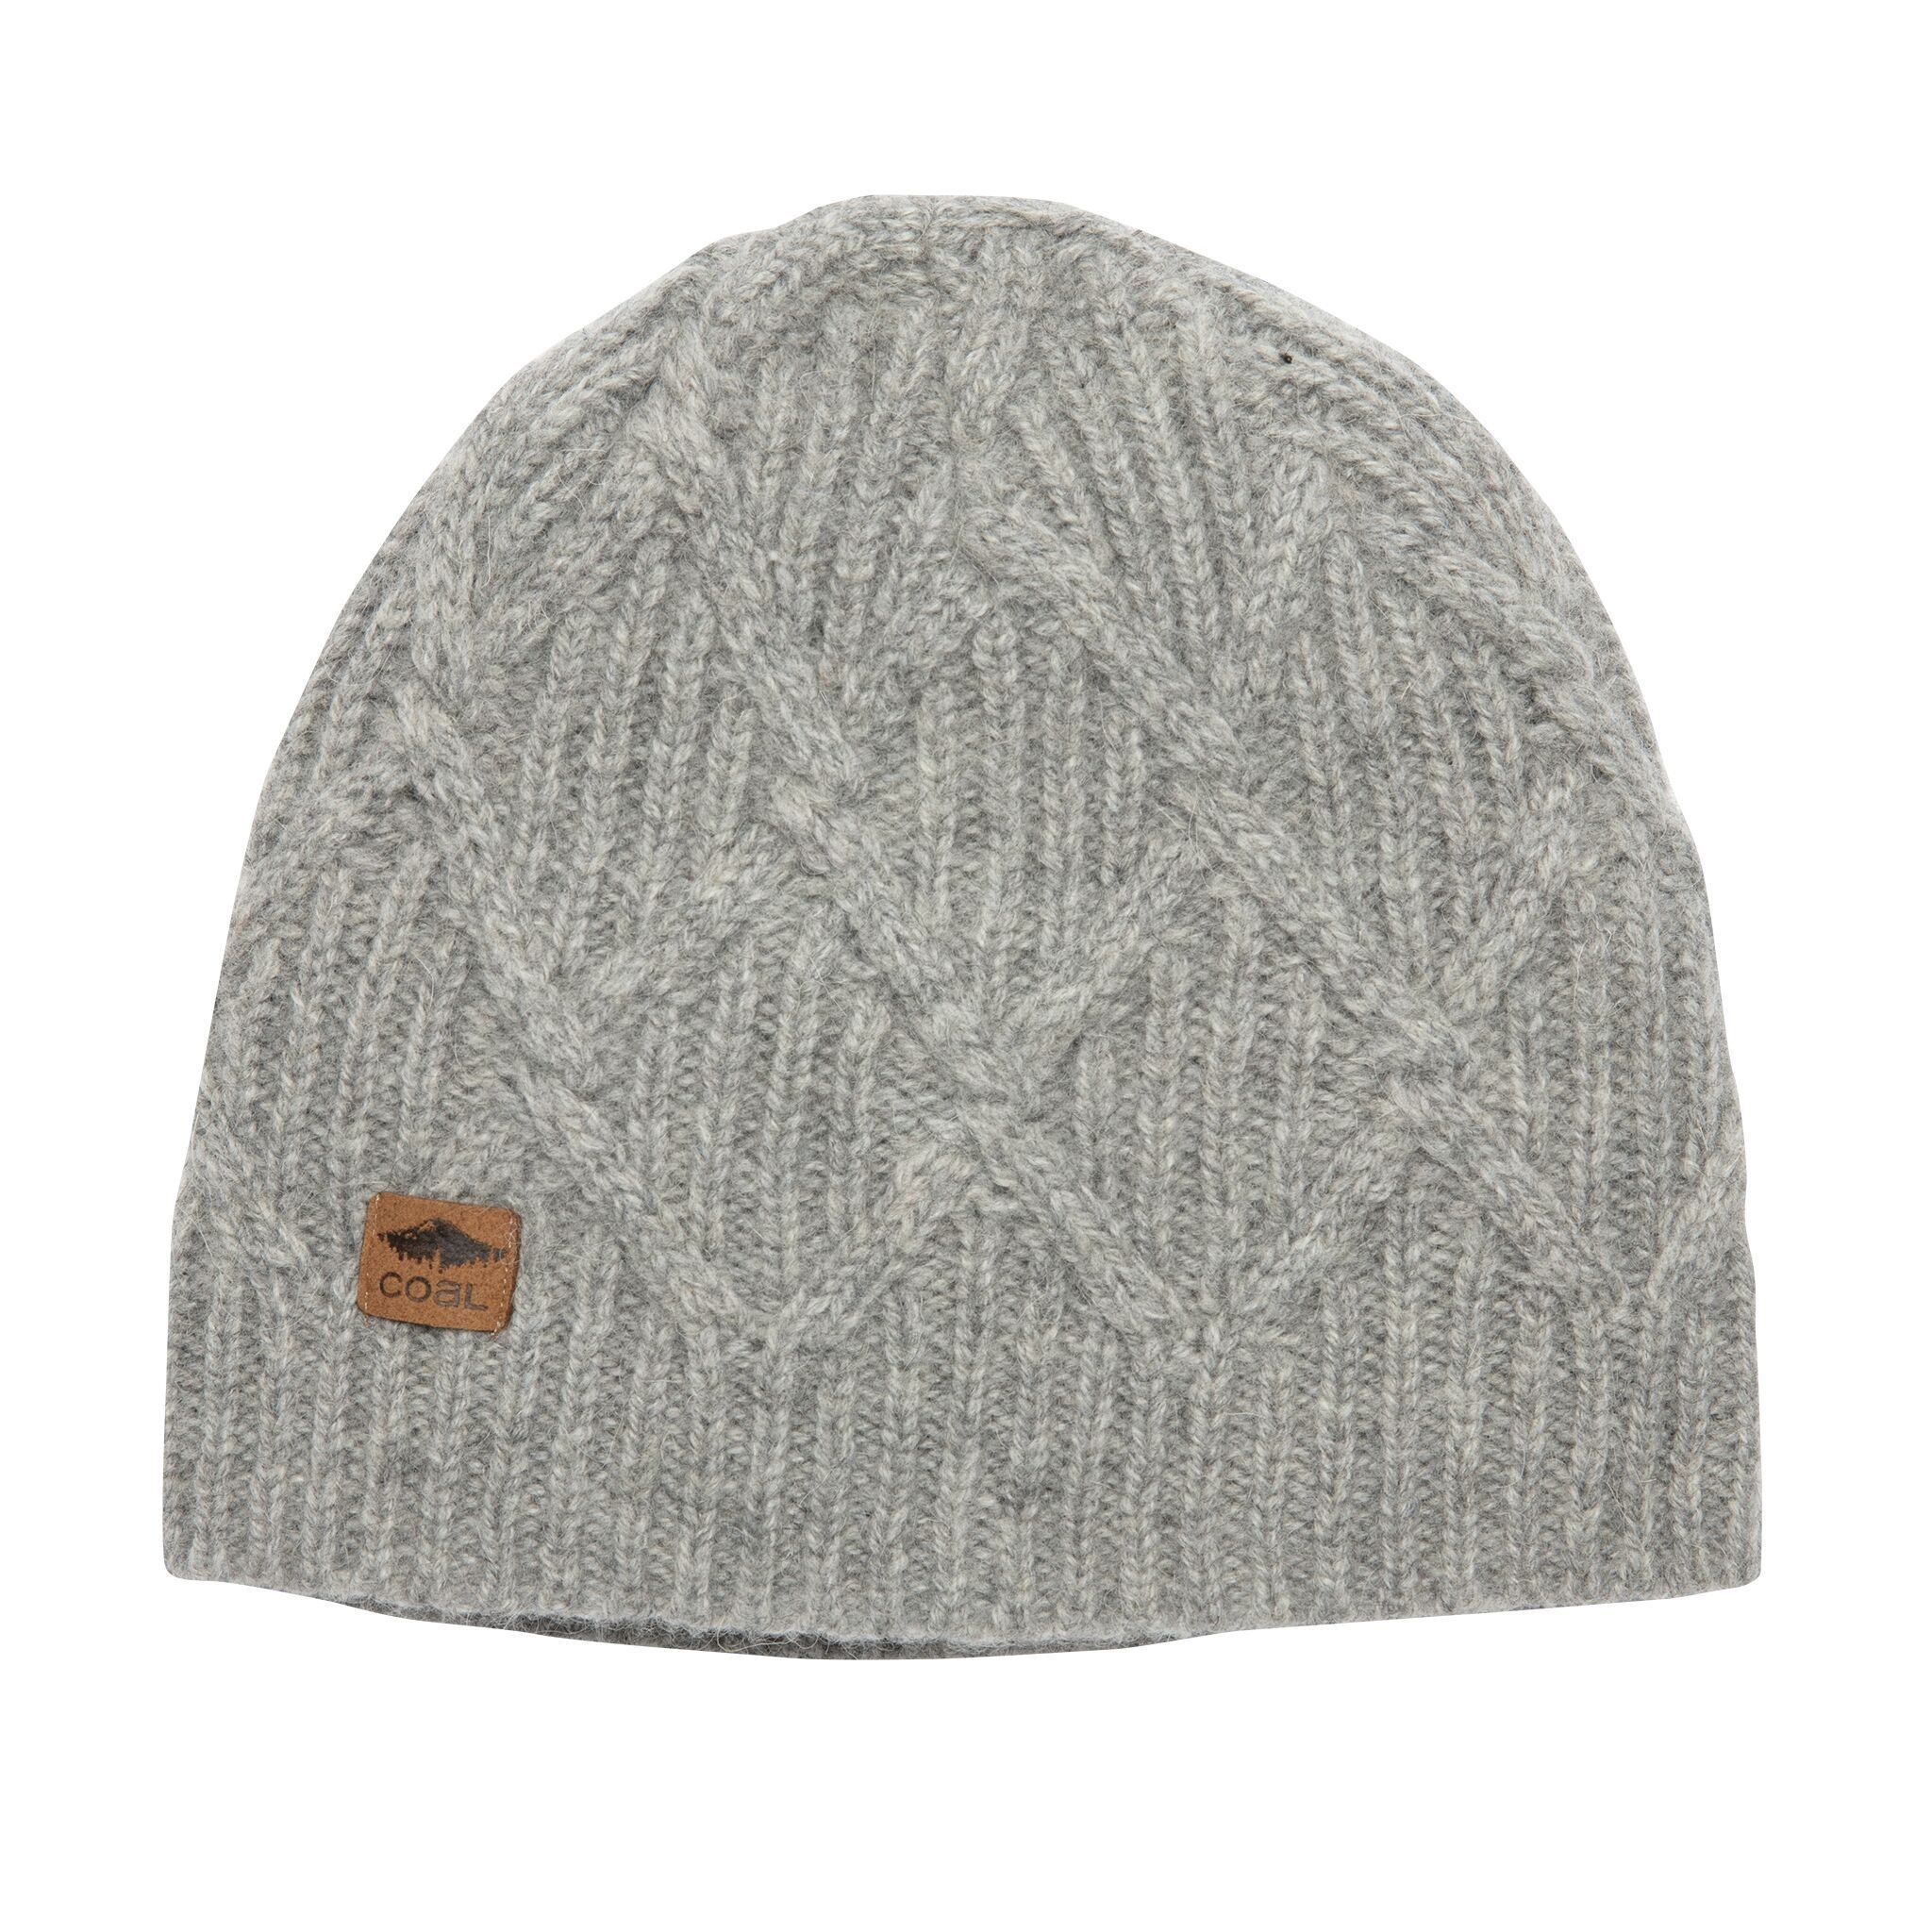 The Yukon Heather Grey